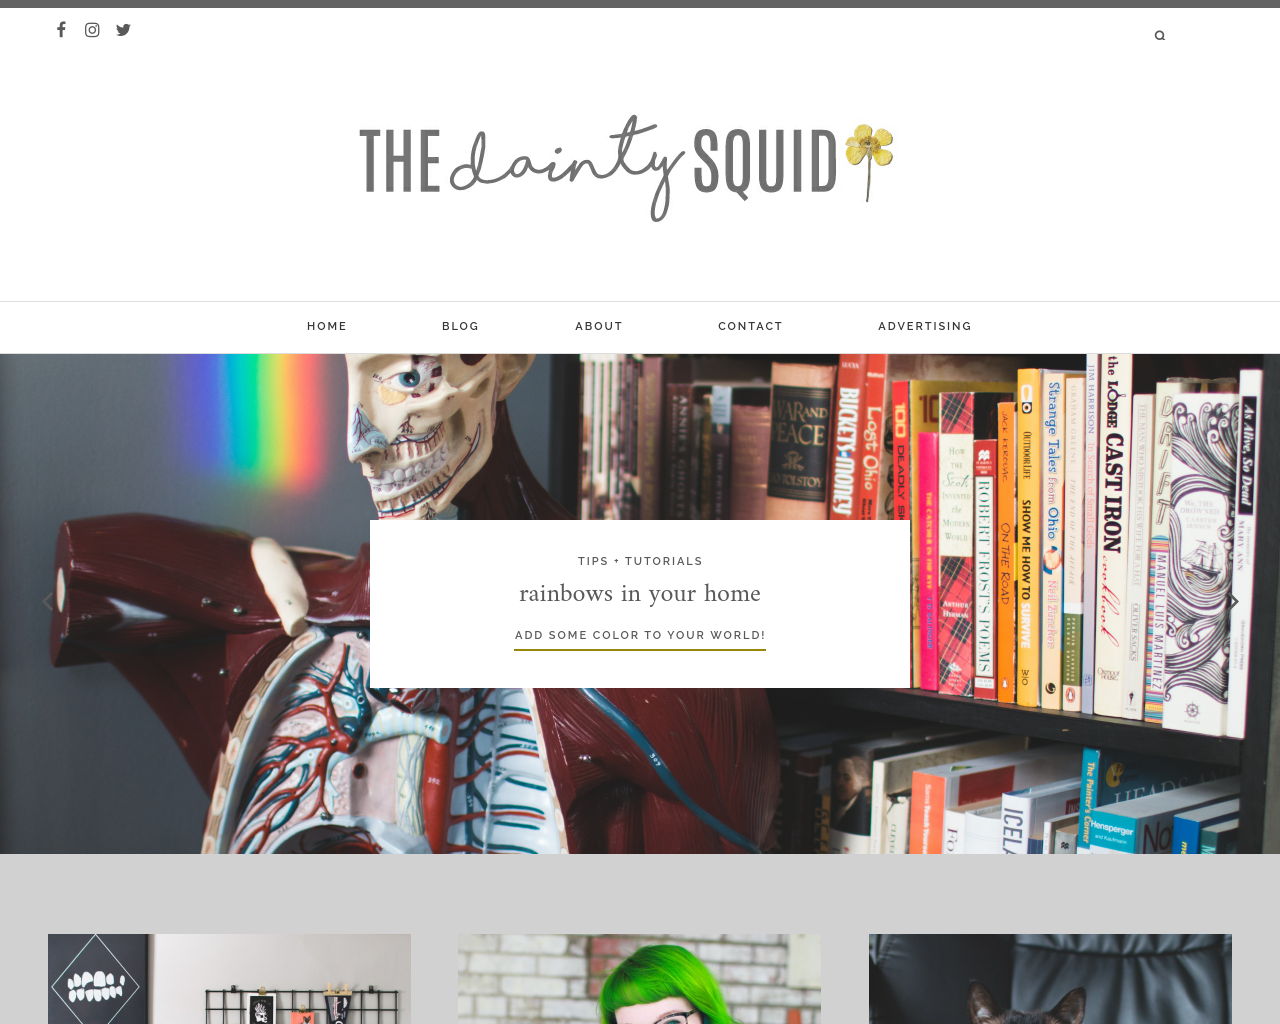 The-Dainty-Squid-Advertising-Reviews-Pricing